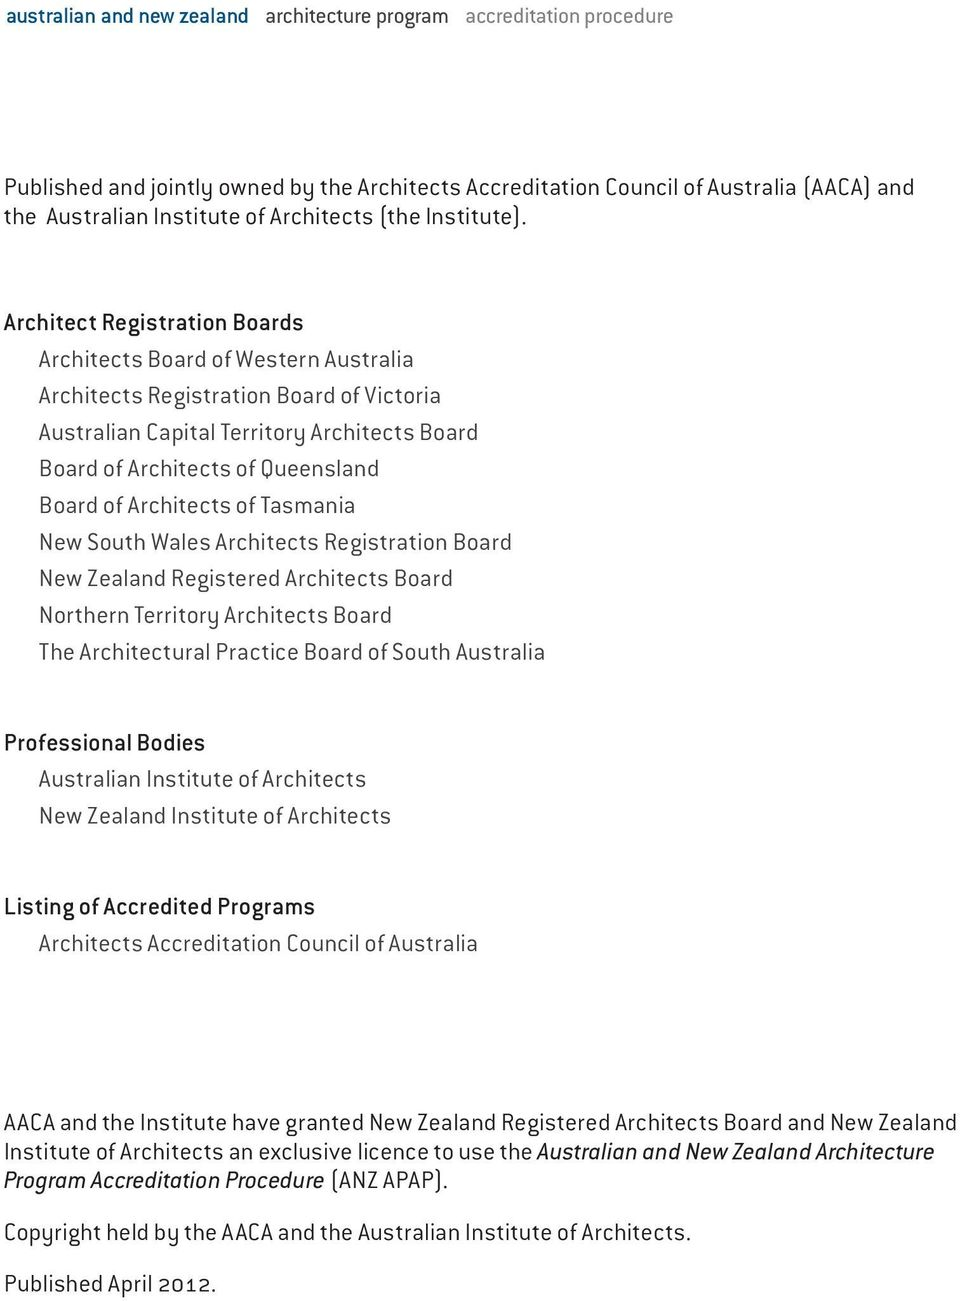 Architects of Tasmania New South Wales Architects Registration Board New Zealand Registered Architects Board Northern Territory Architects Board The Architectural Practice Board of South Australia